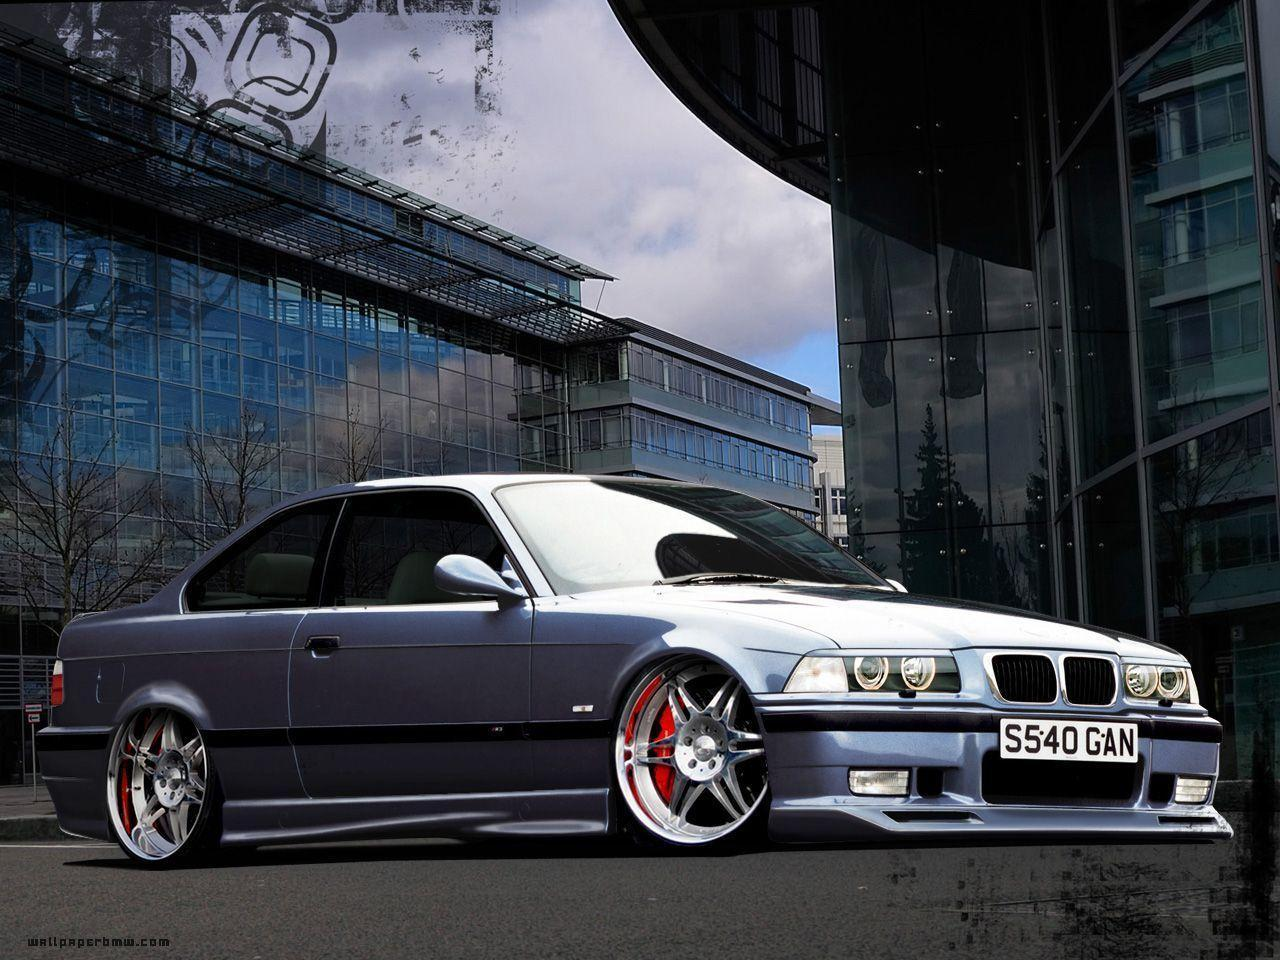 Free Download Bmw E36 M3 Wallpapers 1280x960 For Your